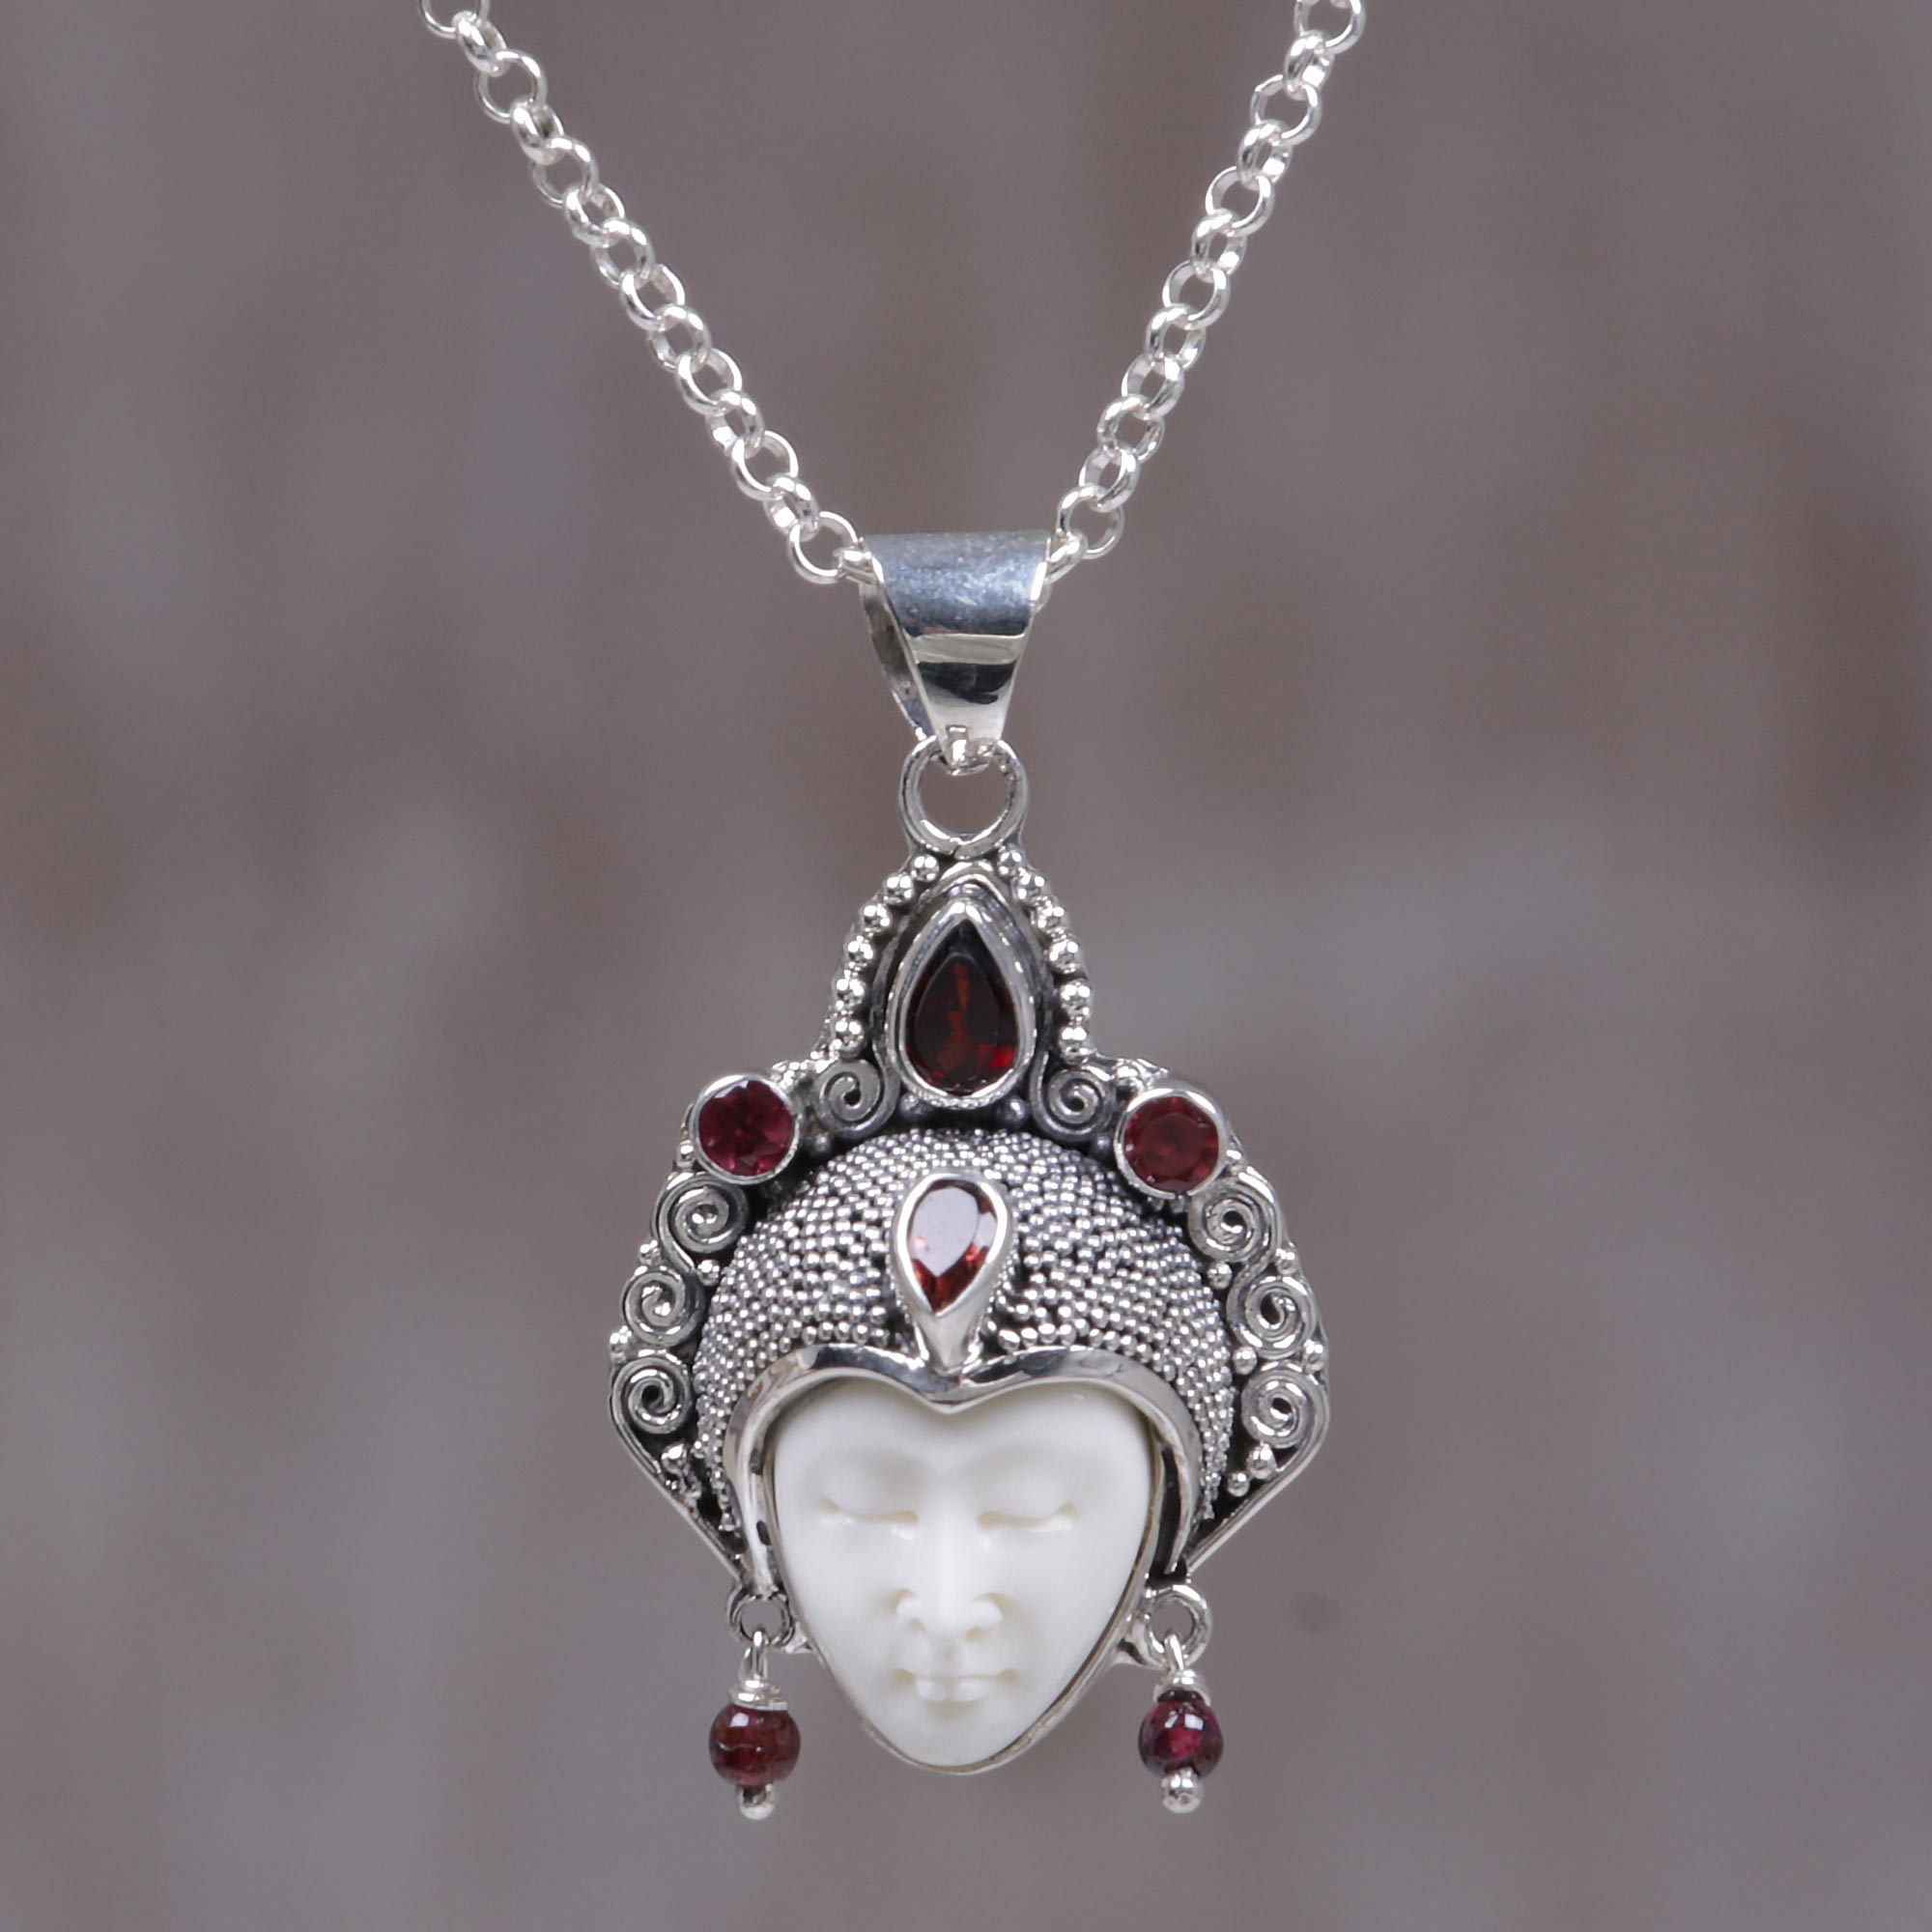 Queen of Sumatra Handmade Sterling Silver and Garnet Pendant Necklace Artisan Story